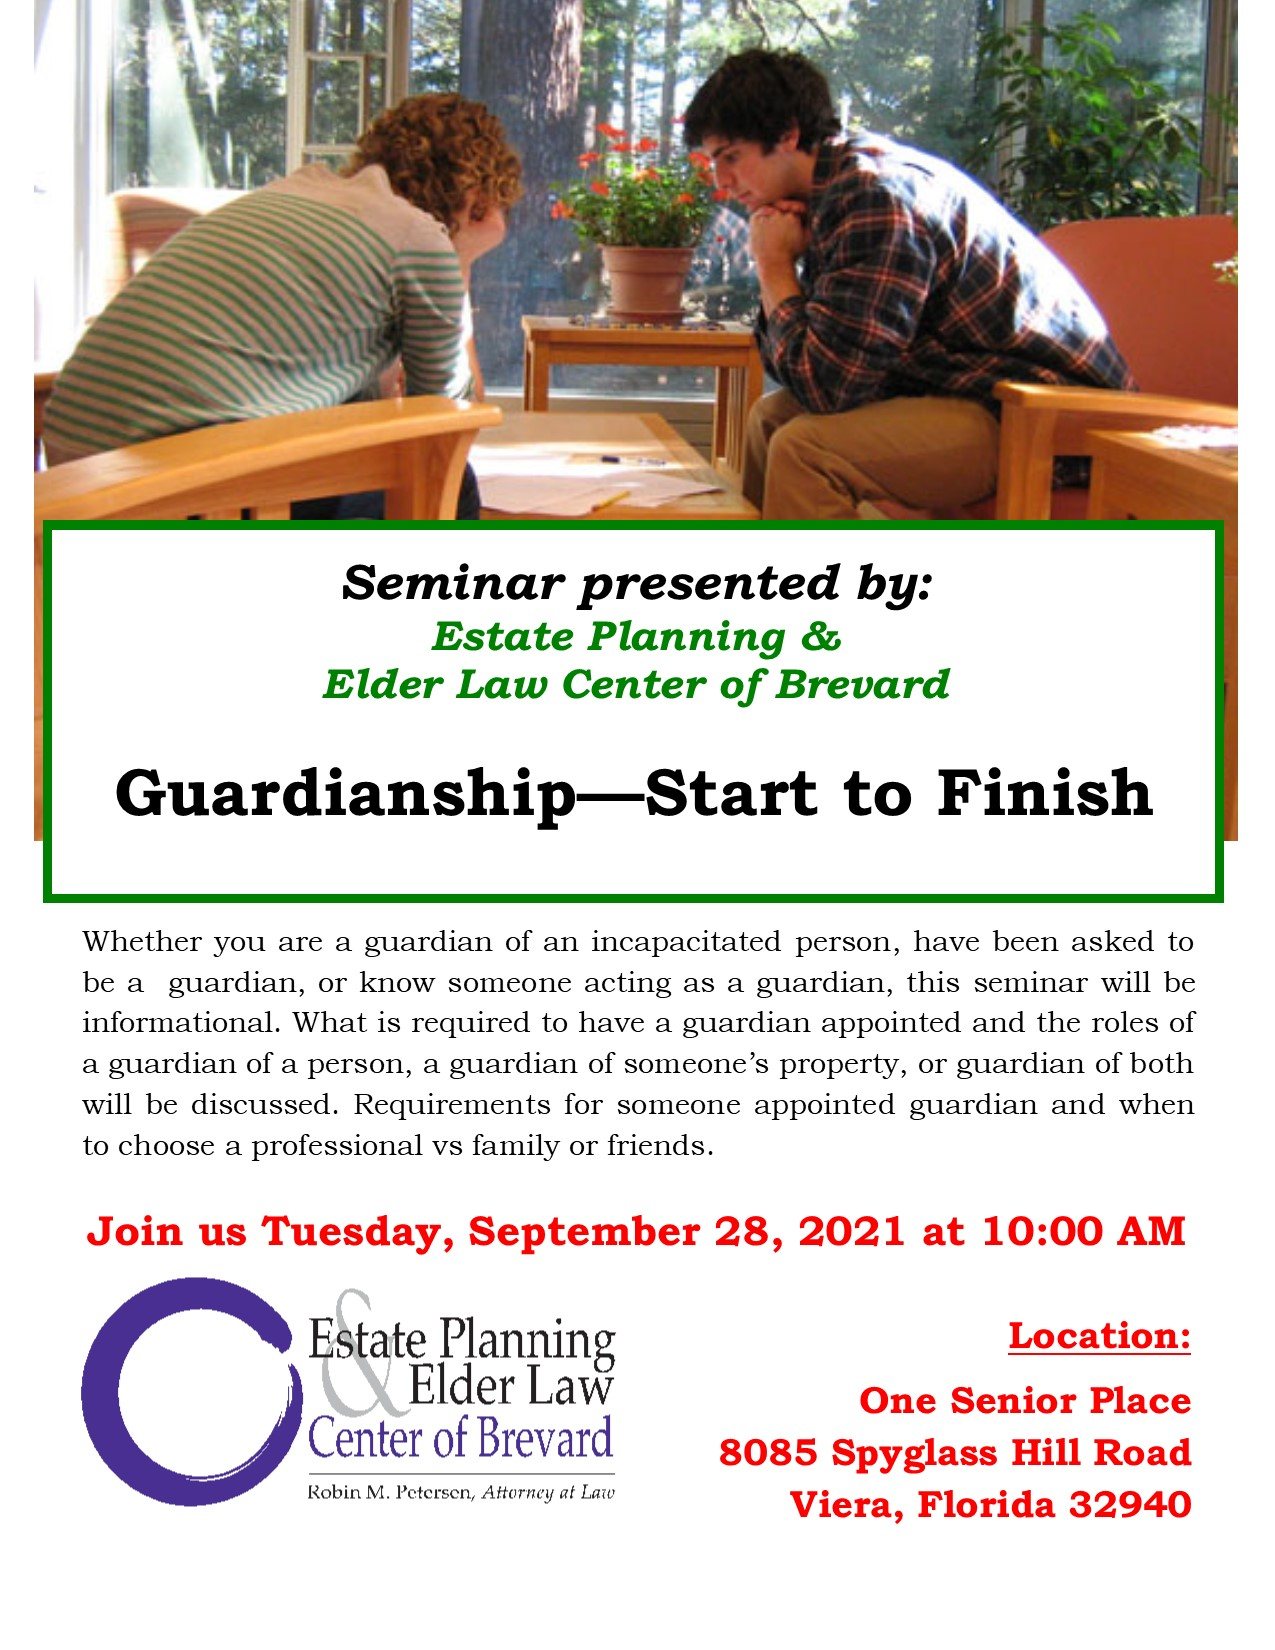 Guardianship - Start to Finish, presented by Estate Planning and Elder Law Center of Brevard